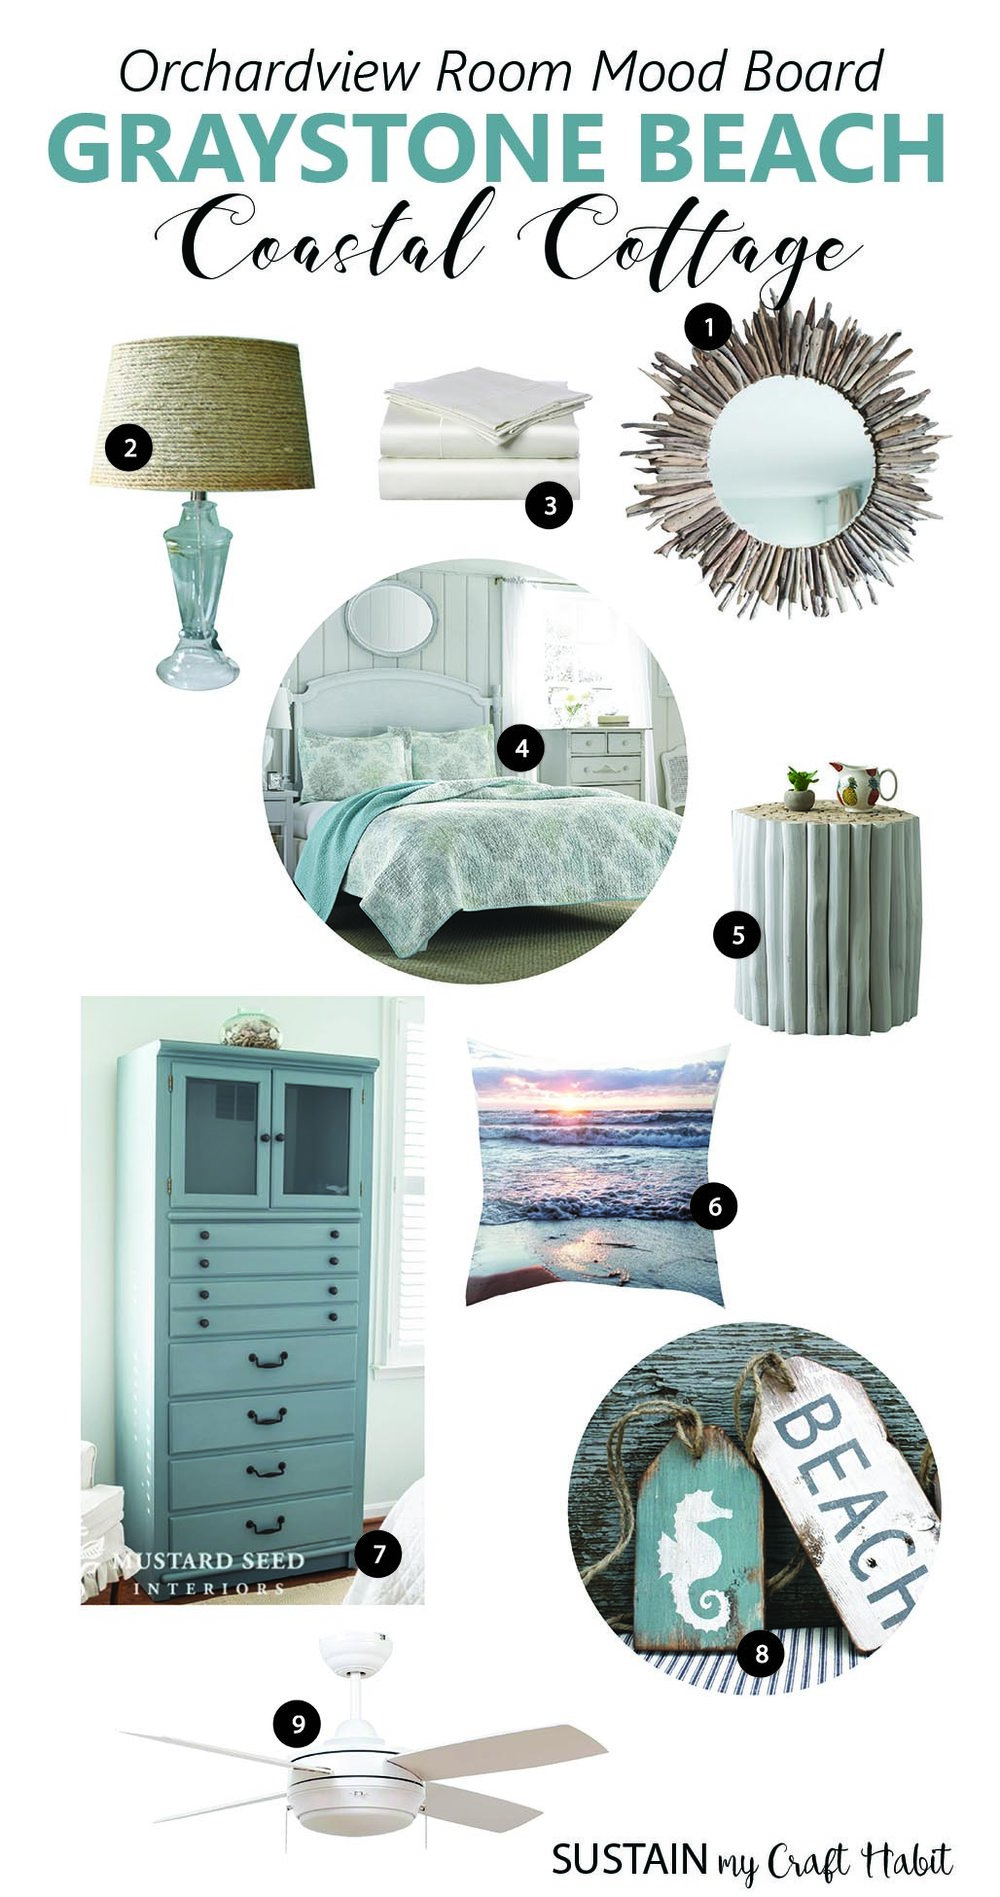 Graystone Beach Coastal Cottage Reno Orchardview Room Mood Board And DIY Decor Ideas